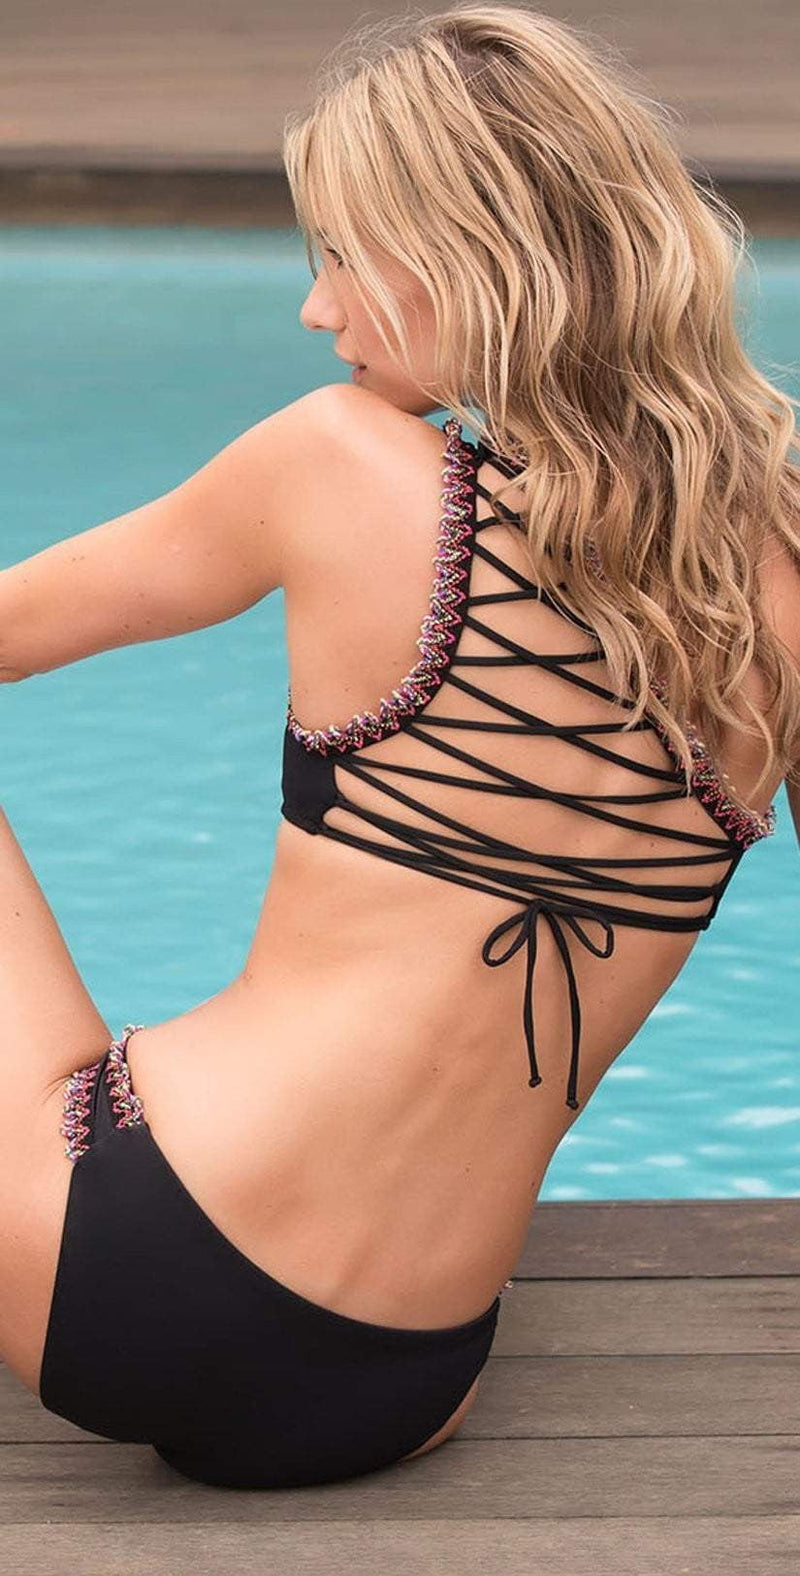 Becca Mardi Gras Crochet Hipster Bottom in Black 514387-BLK: